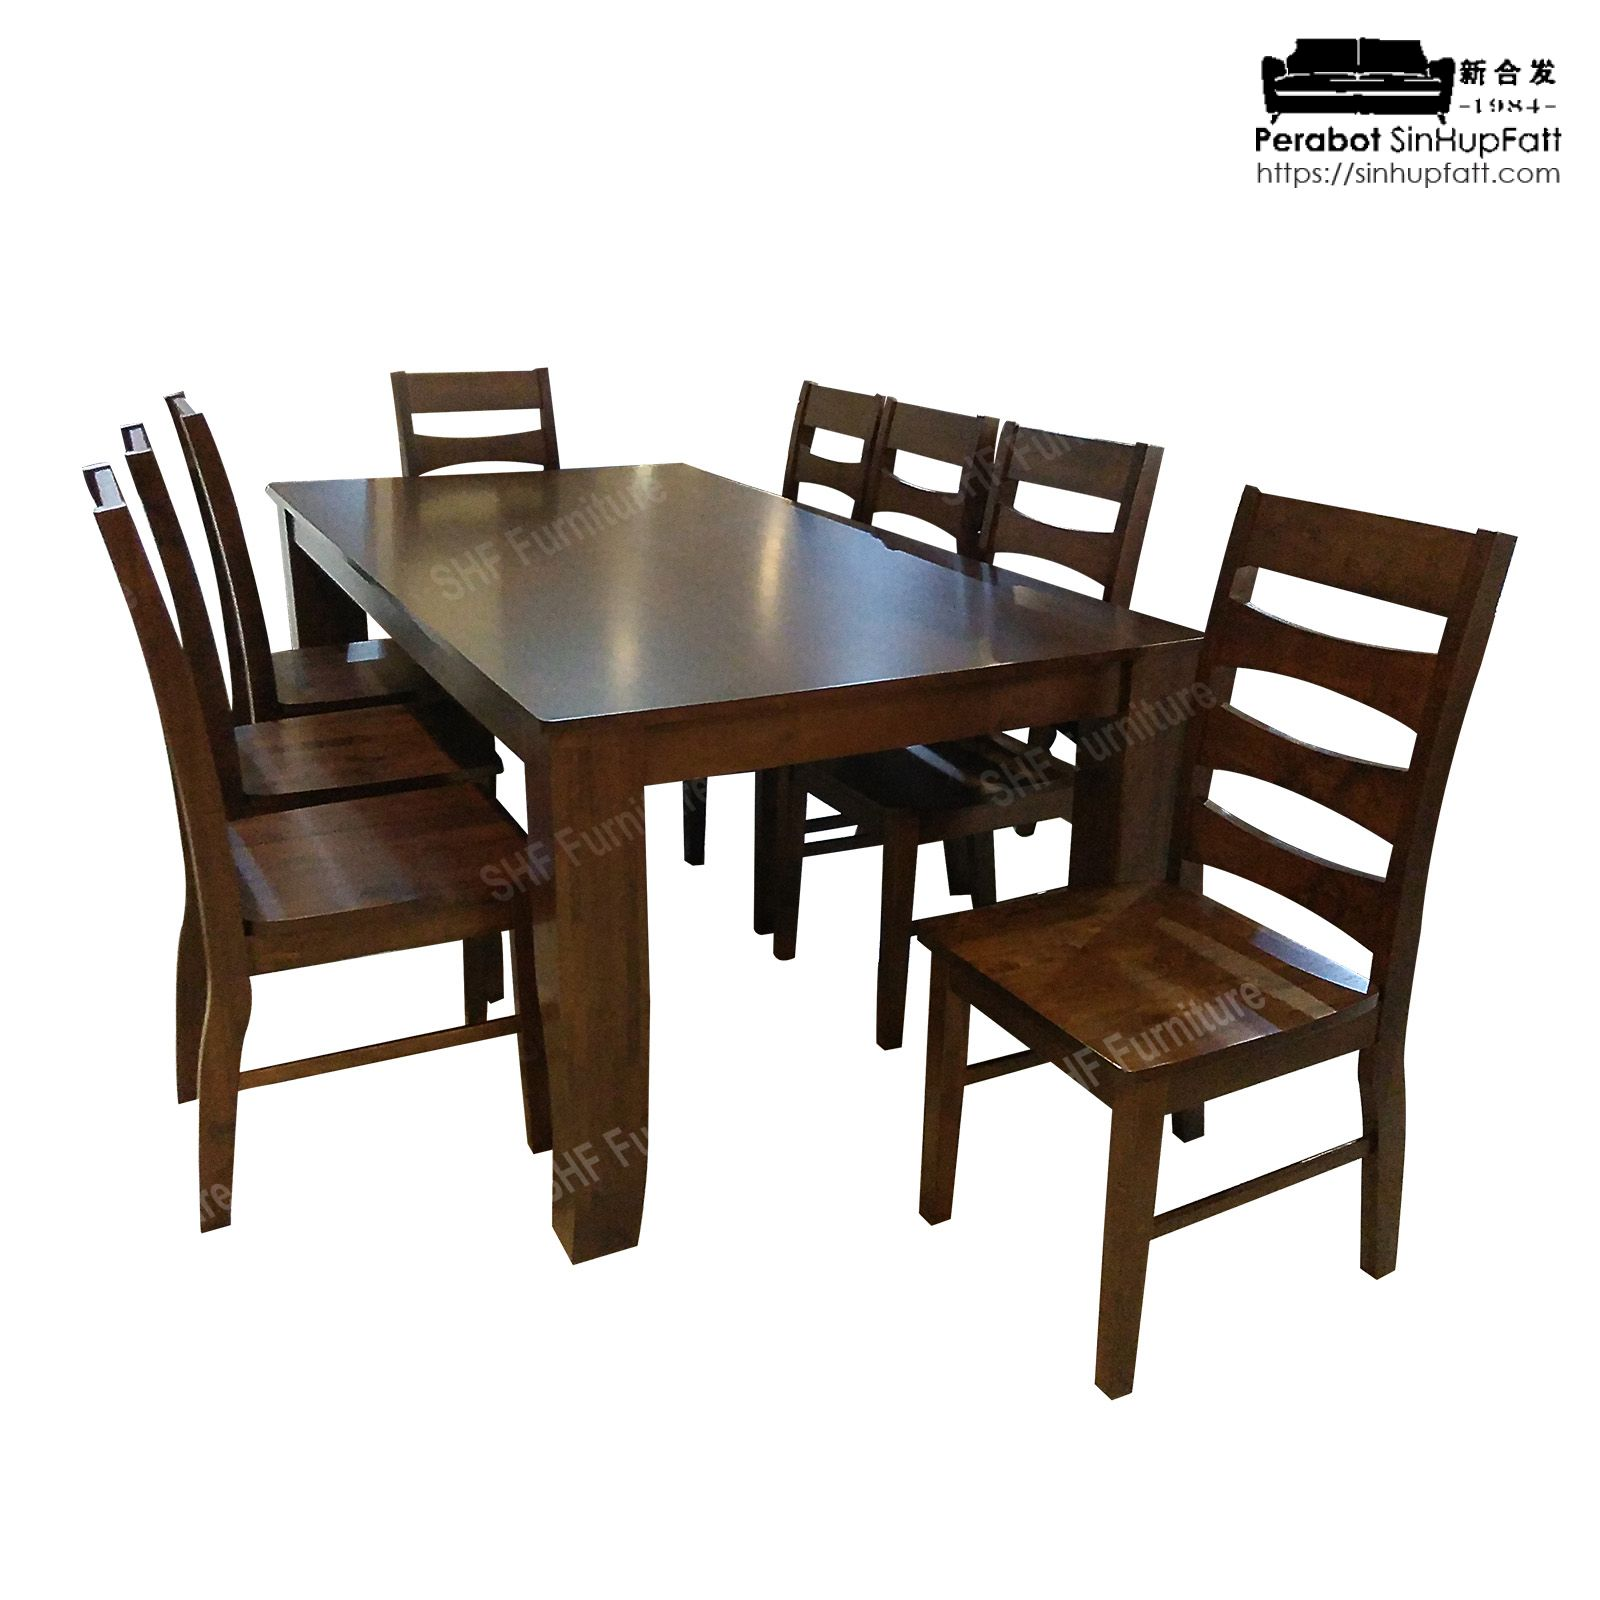 Solid 8 Seater Dining Set Kedai, Wooden Dining Room Table And 8 Chairs